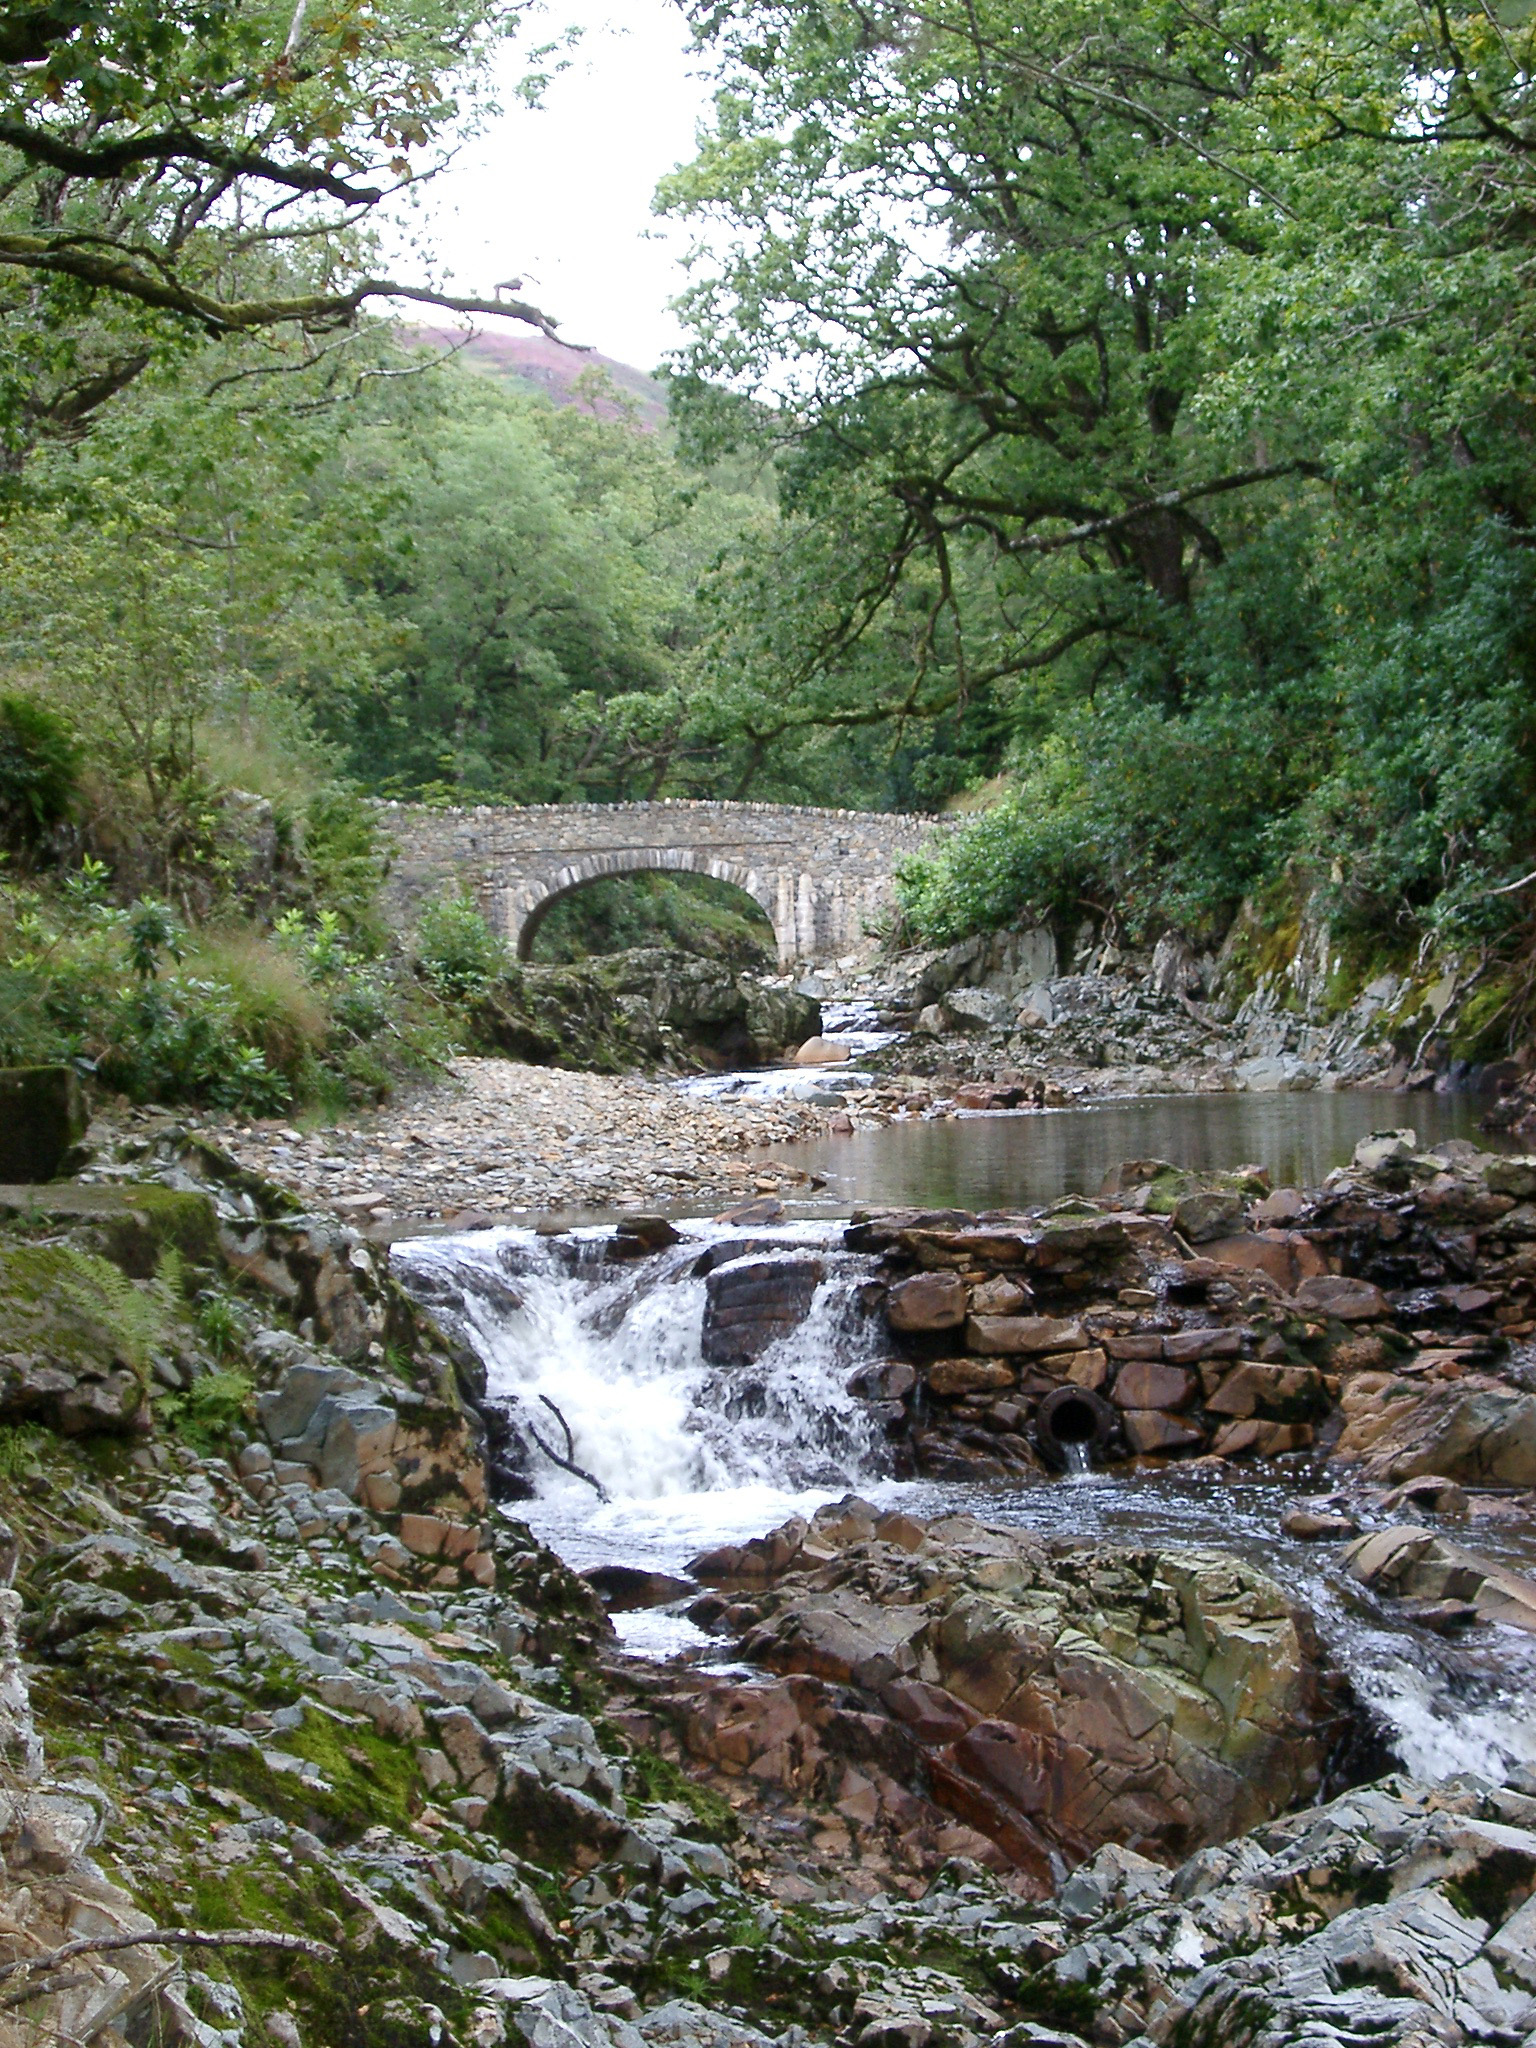 Small stone arch bridge spanning a fast flowing stream with white water in lush green woodland